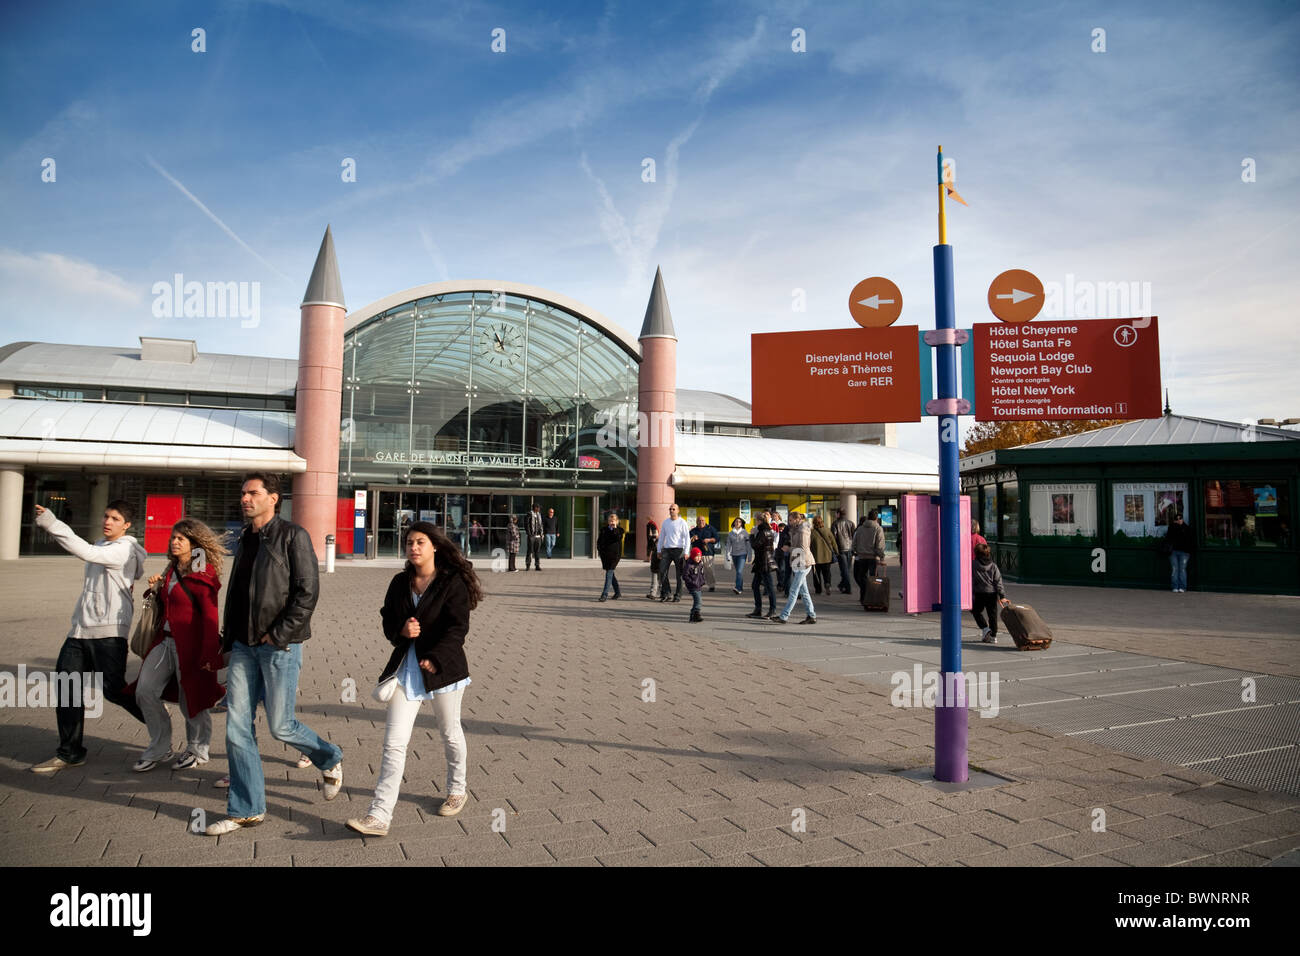 people arriving at marne la vallee railway station to visit the stock photo 33056403 alamy. Black Bedroom Furniture Sets. Home Design Ideas